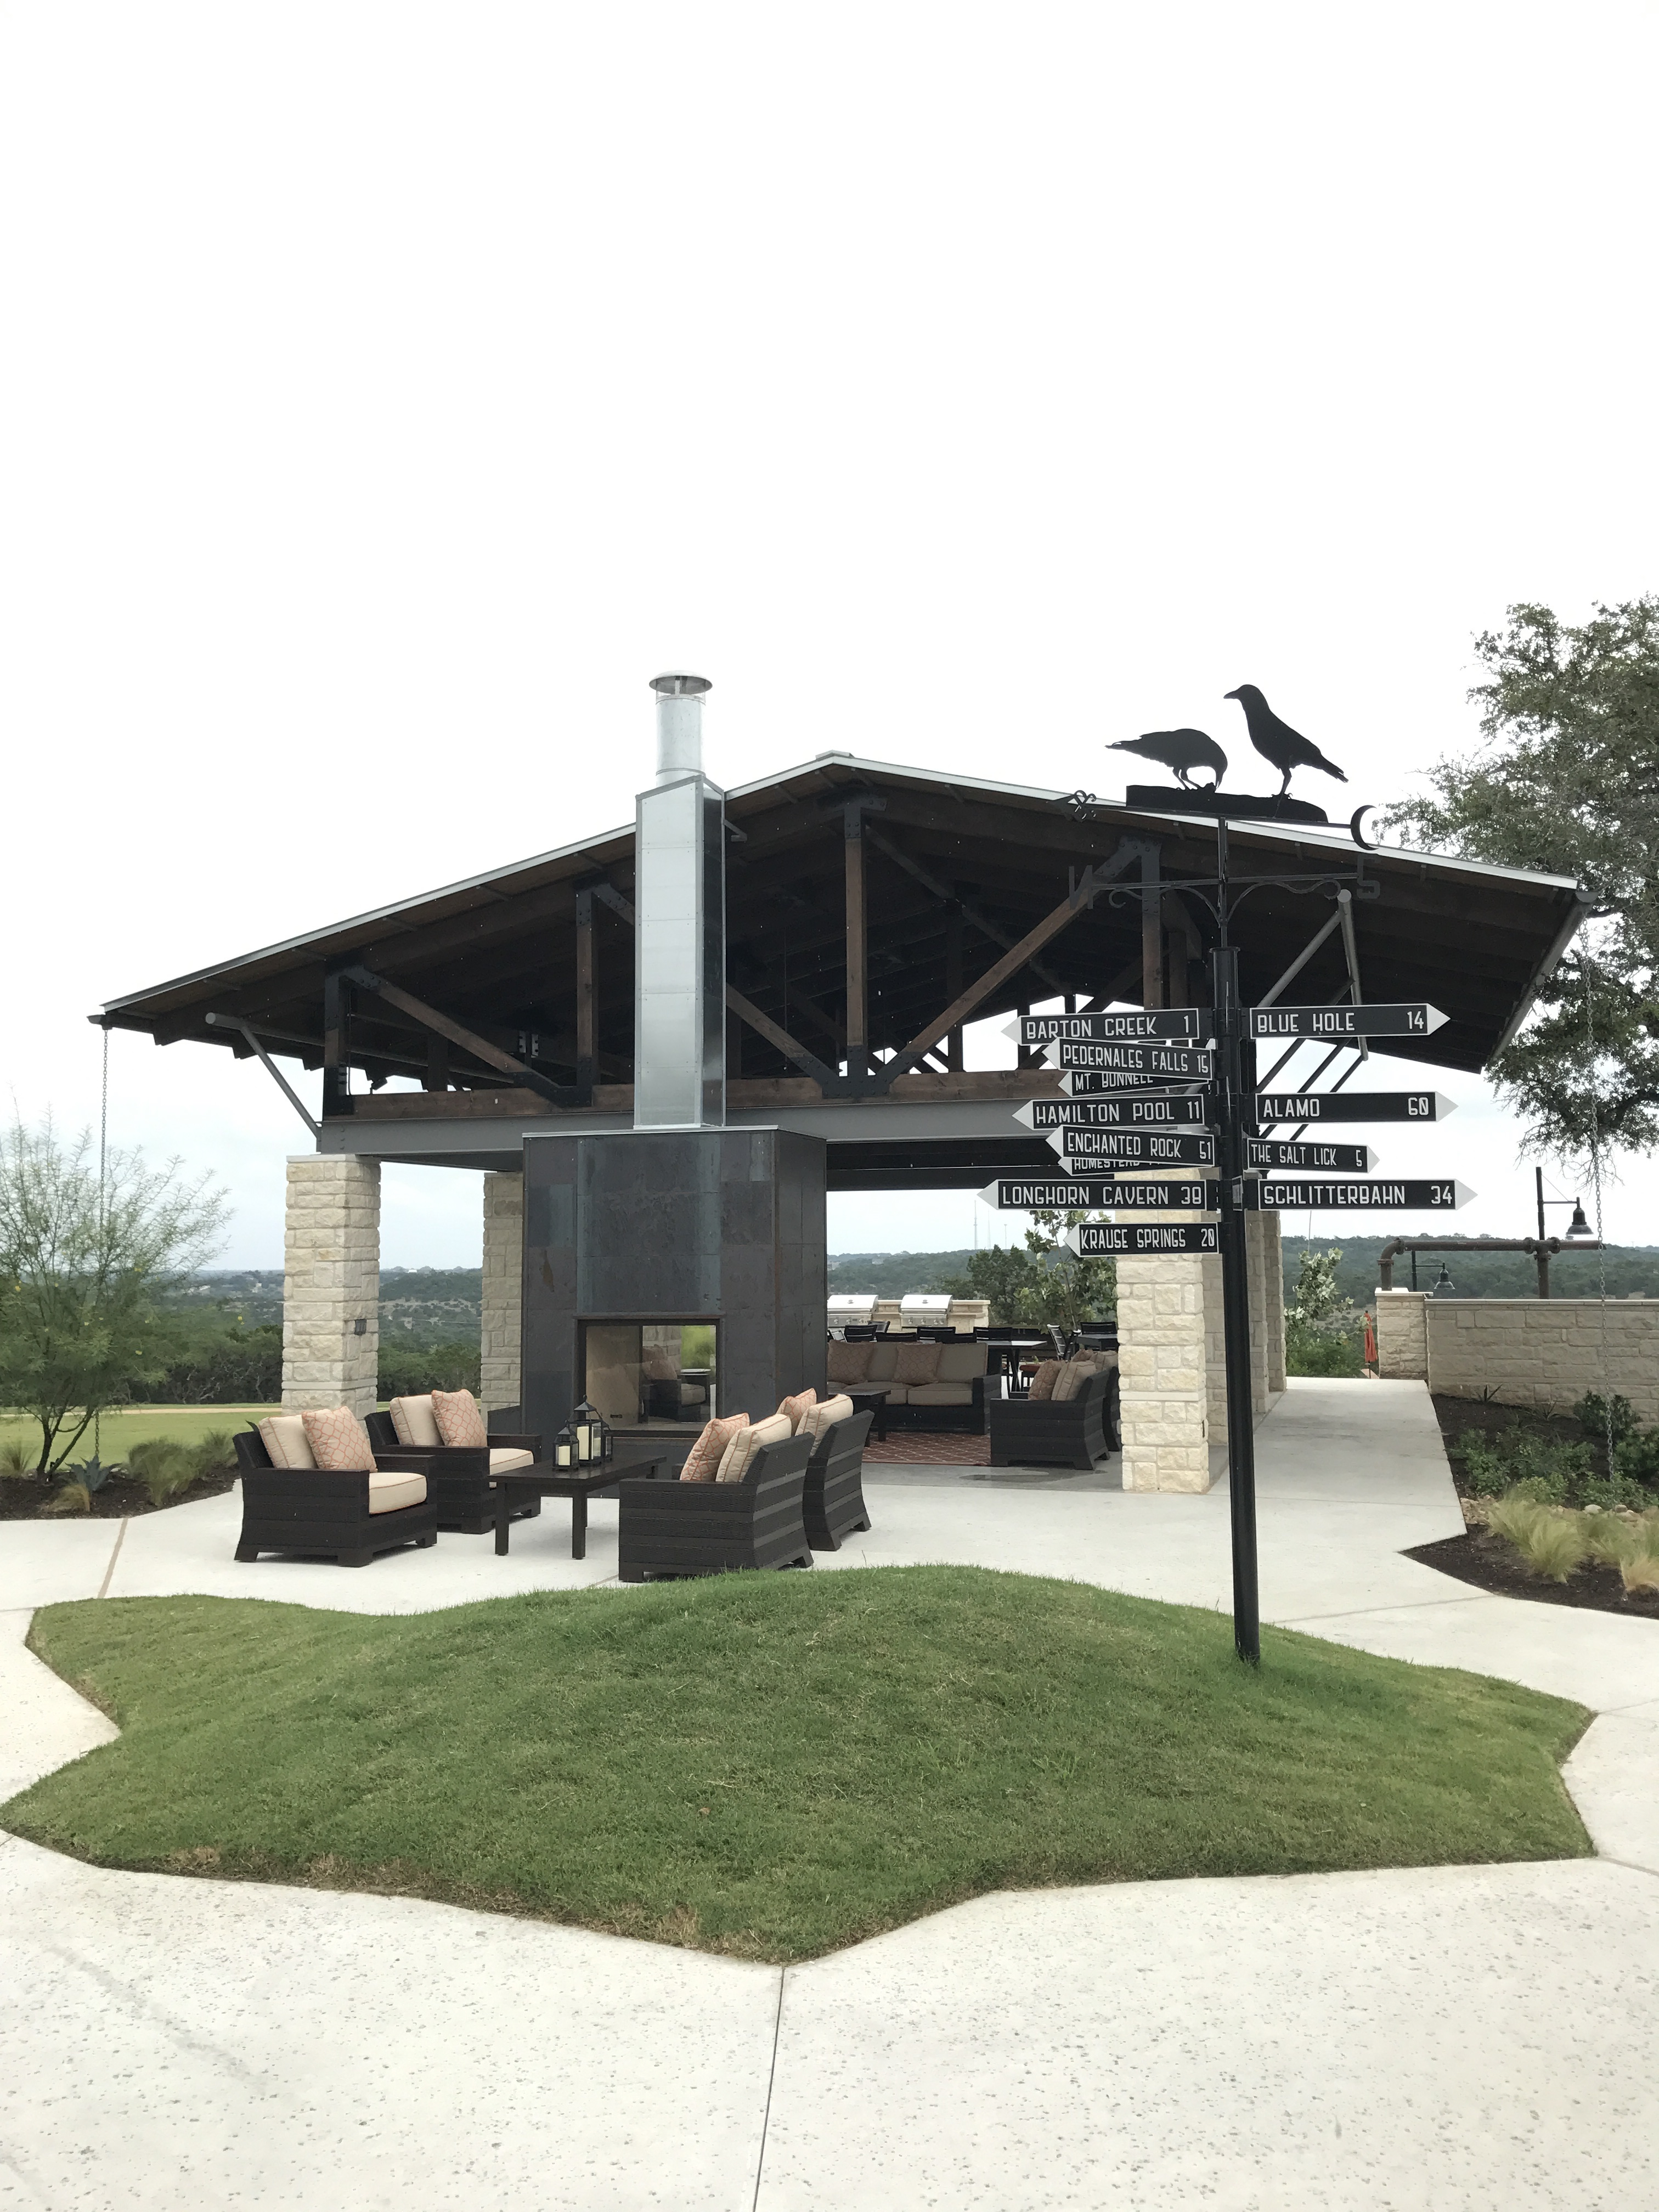 An outdoor area of the amenities center. Cozy!